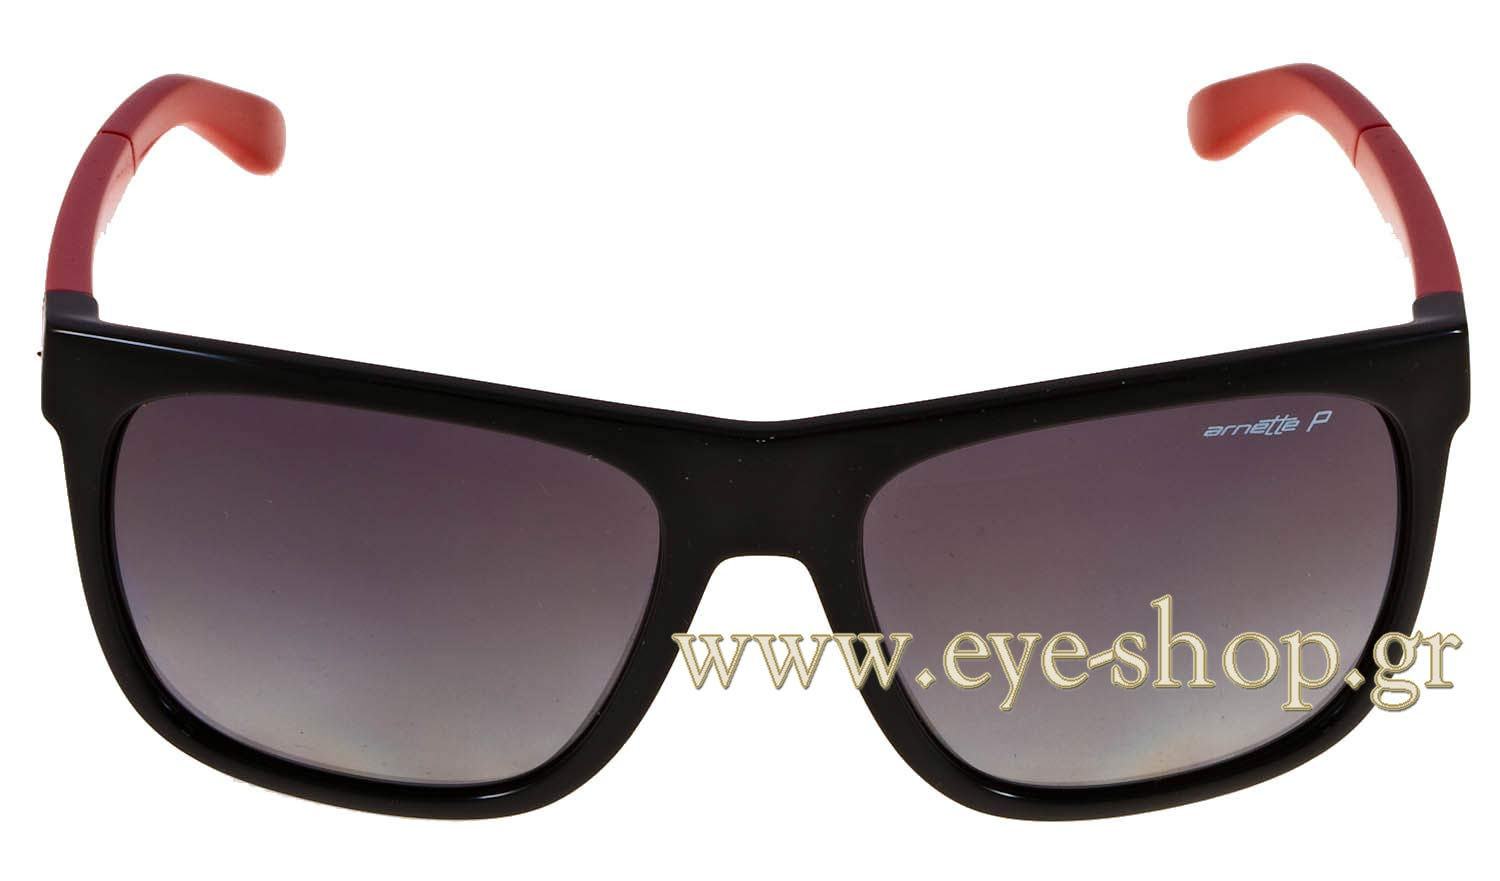 e92741aee6 ARNETTE FIRE DRILL 4143 41/T3 POLARIZED 59 | SUNGLASSES Men EyeShop